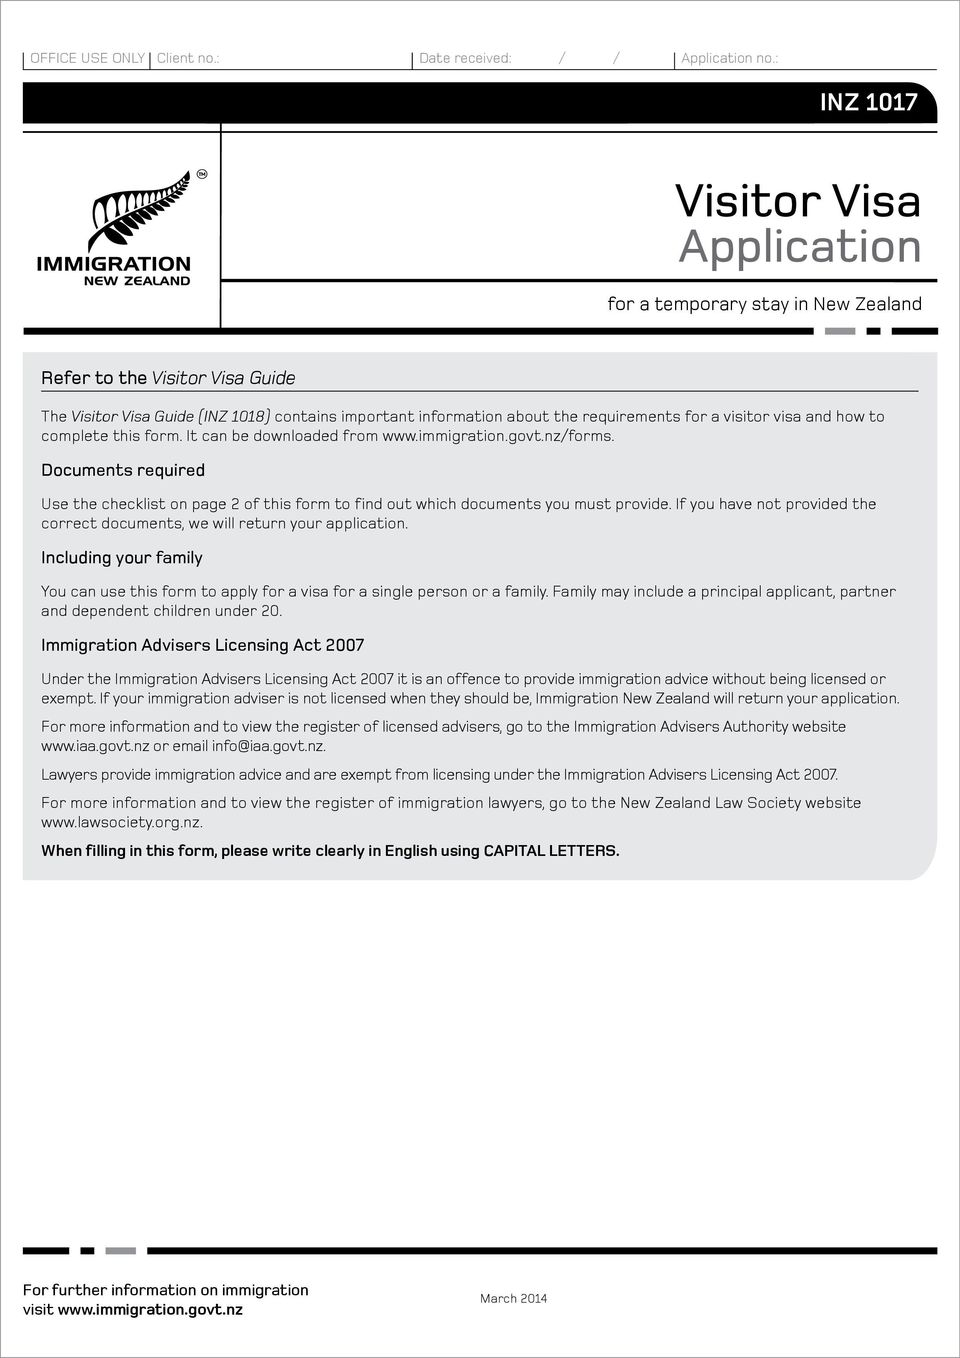 visitor visa and how to complete this form. It can be downloaded from www.immigration.govt.nz/forms.